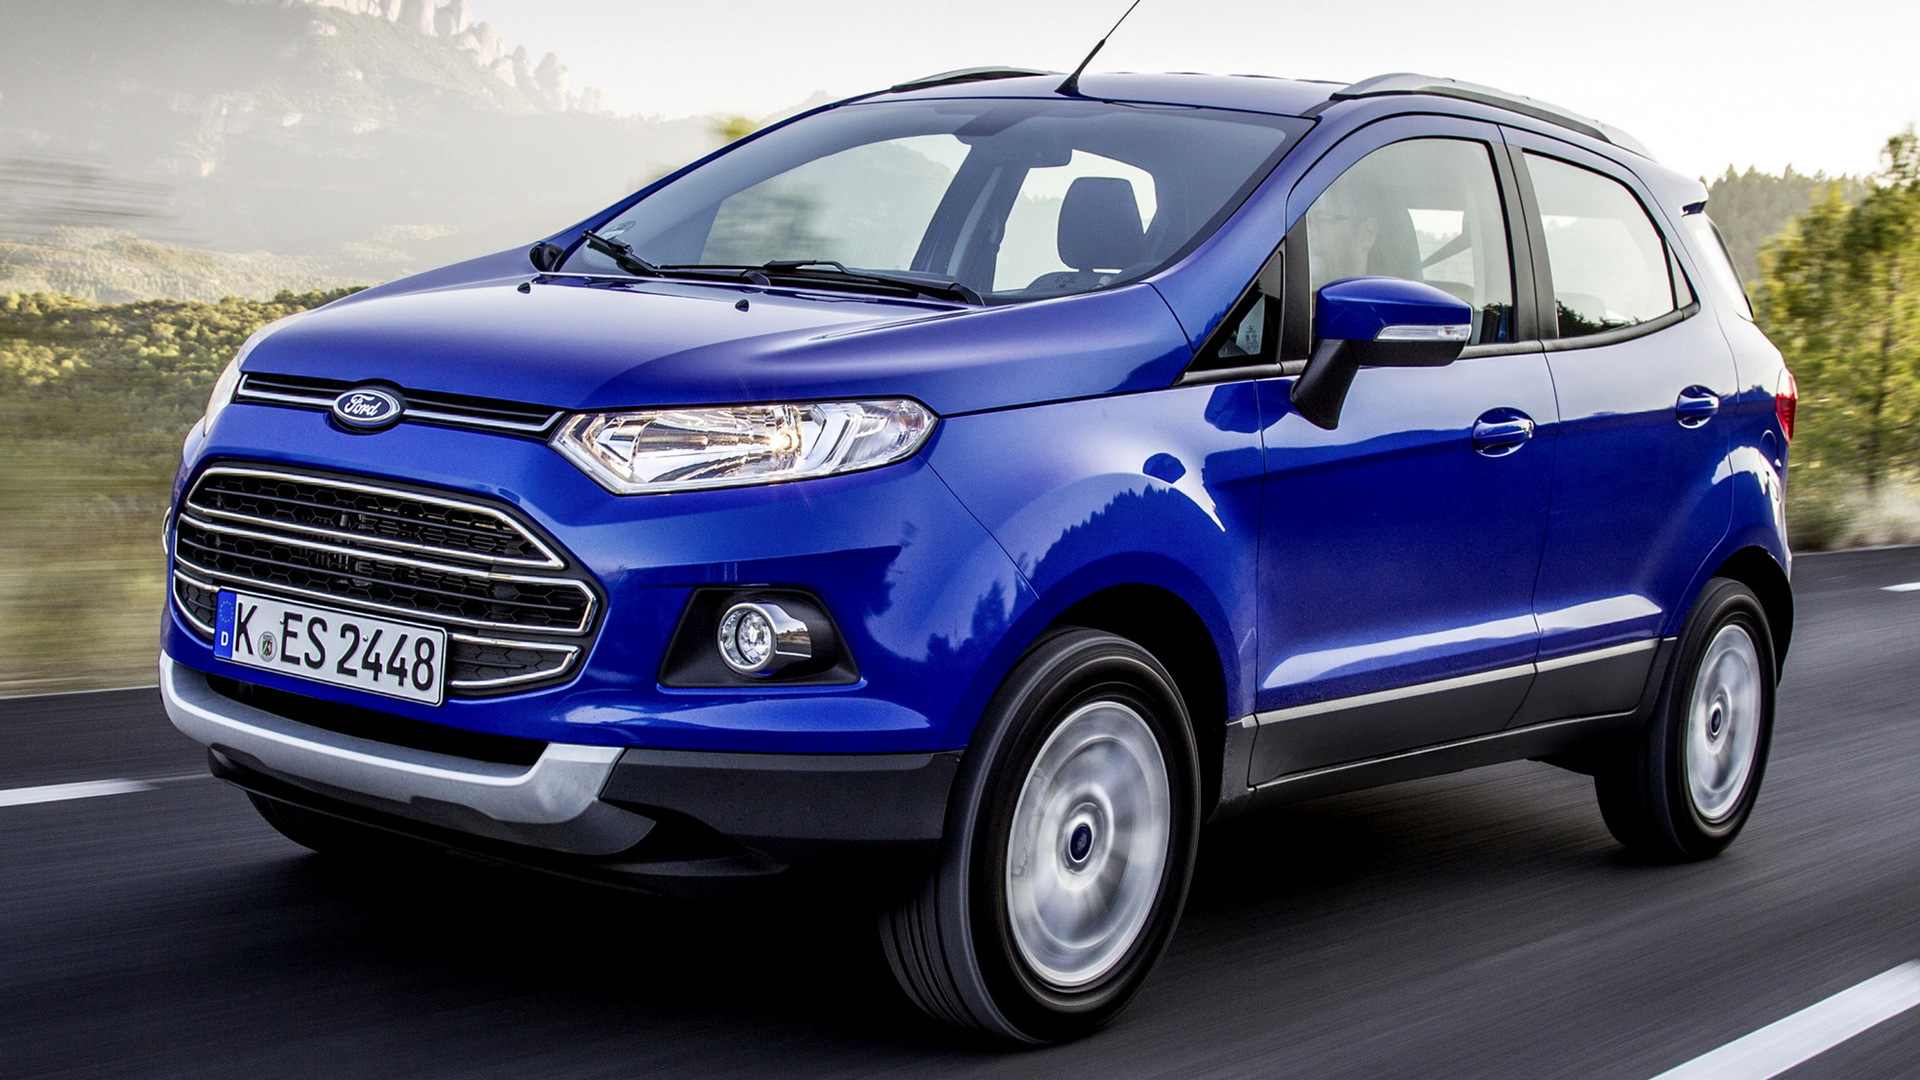 hd images of ford ecosport - all pictures top